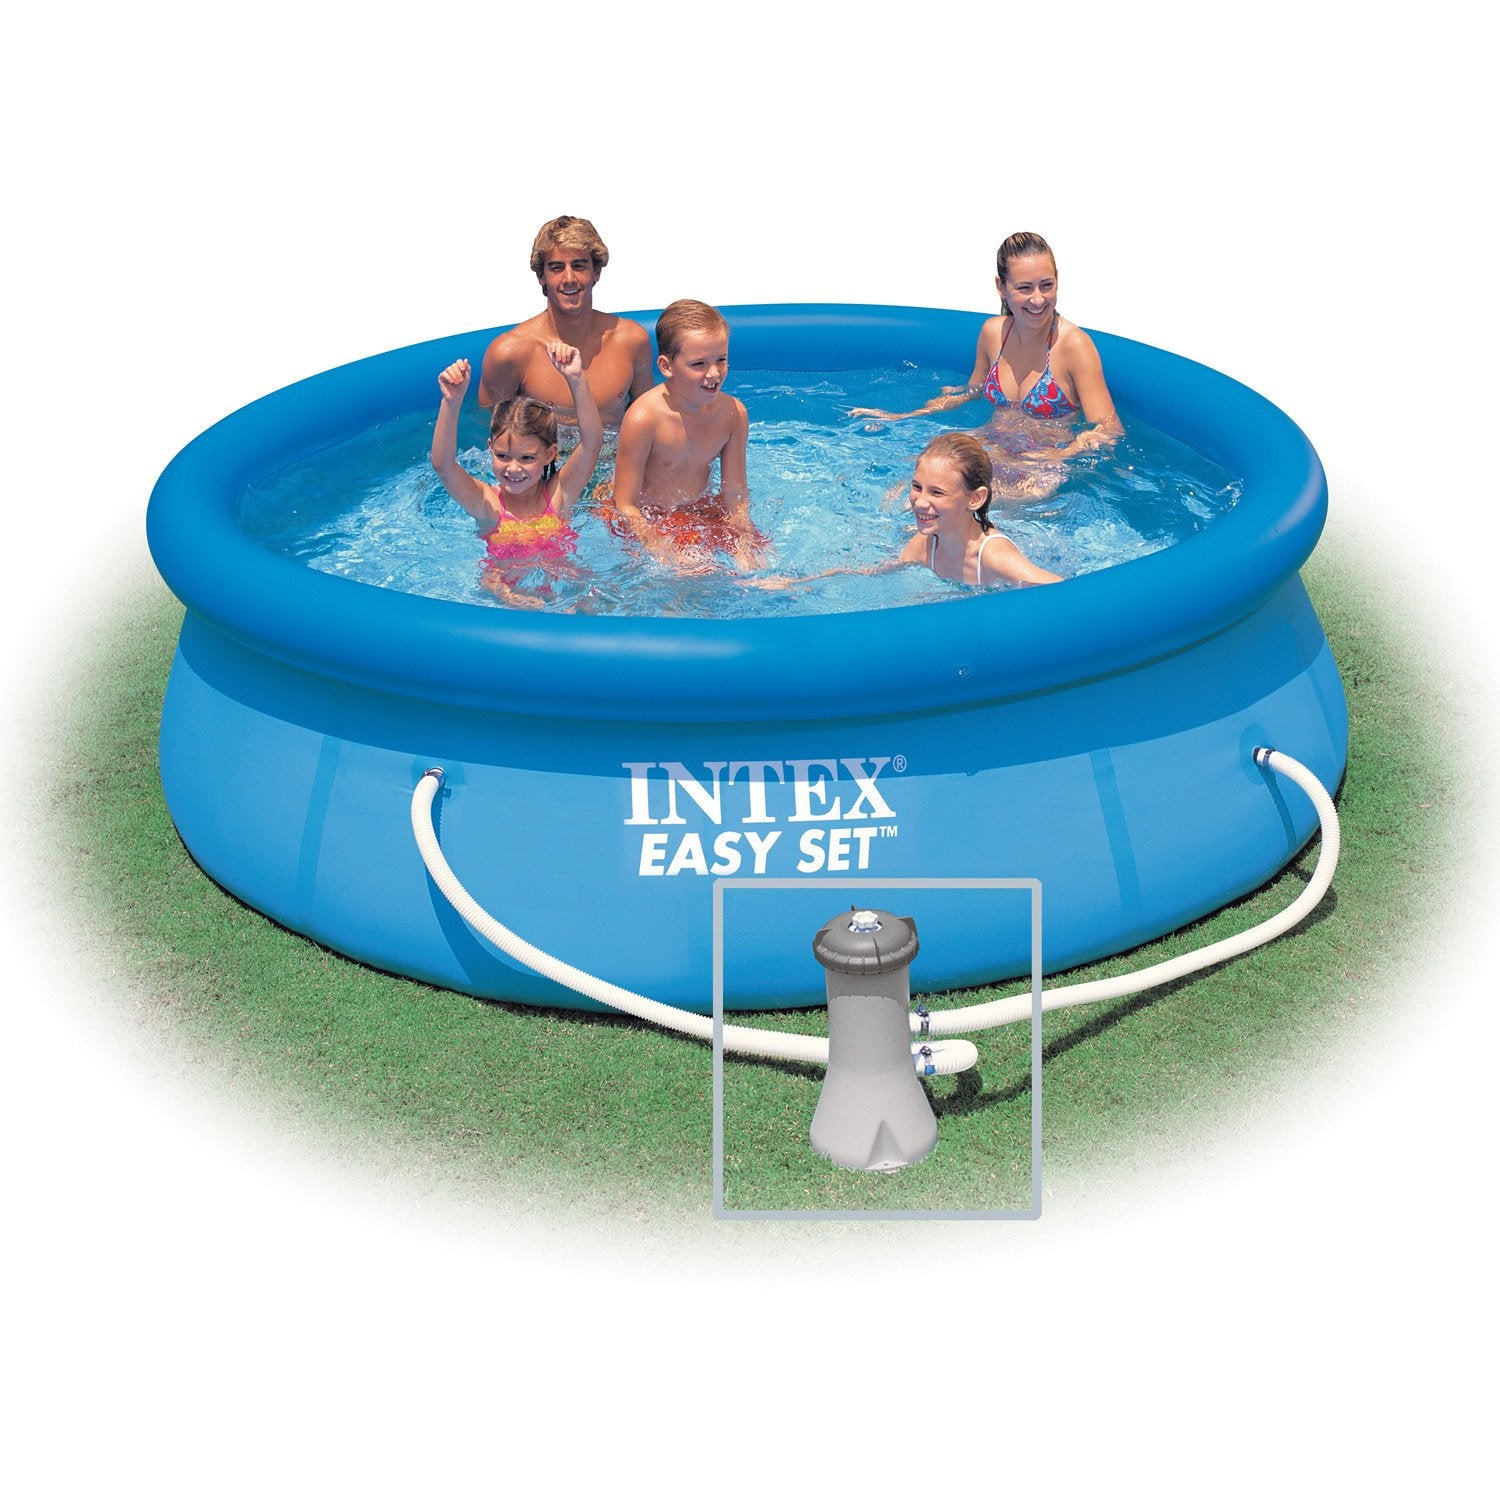 Piscine hors sol autoportante gonflable easy set intex for Entretien piscine intex